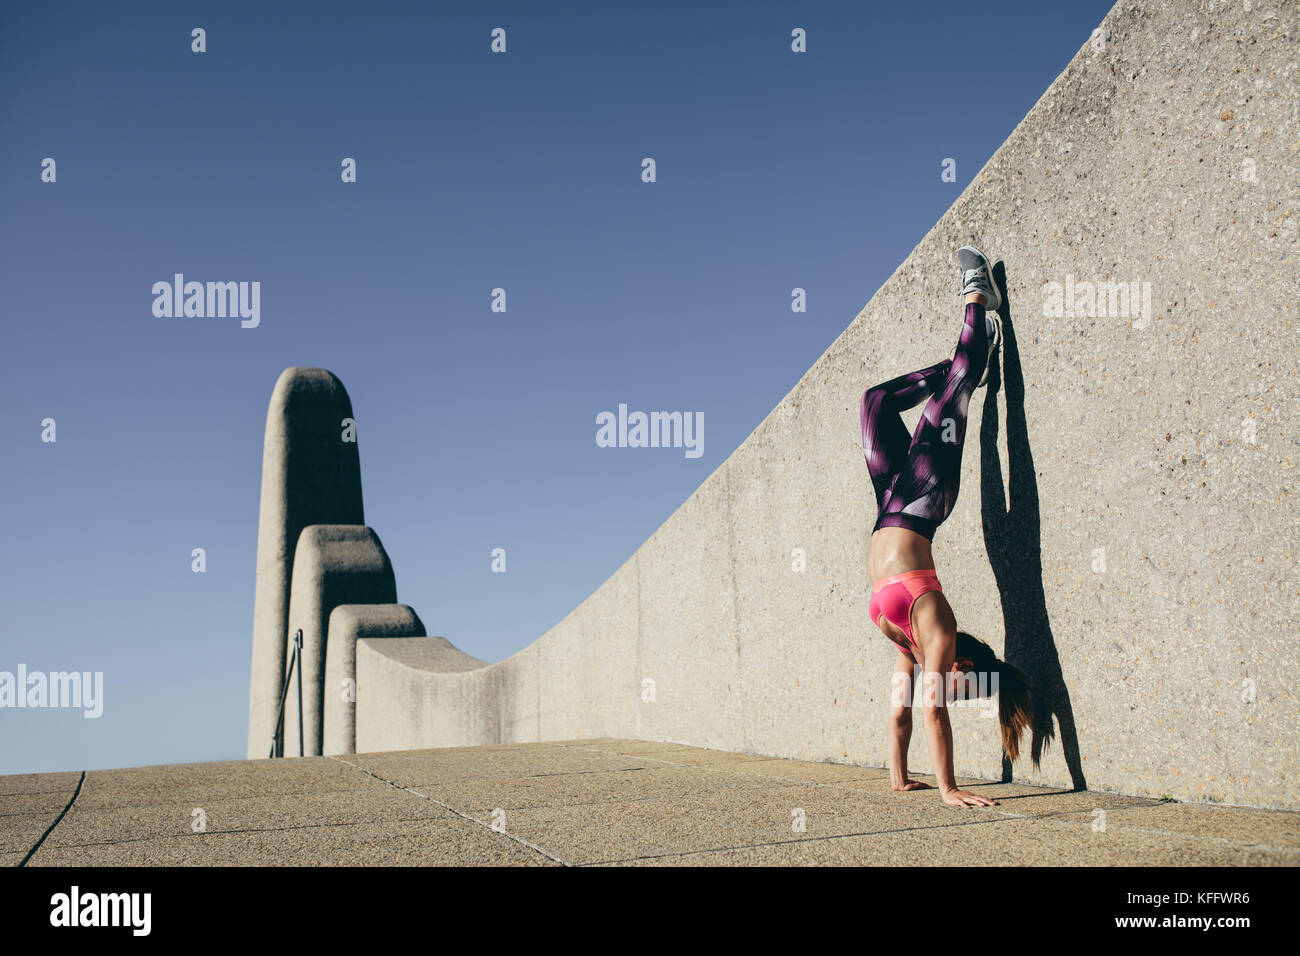 Physically fit woman doing hand stand outdoors. Healthy female standing on hands with feet lifted up against a wall. - Stock Image